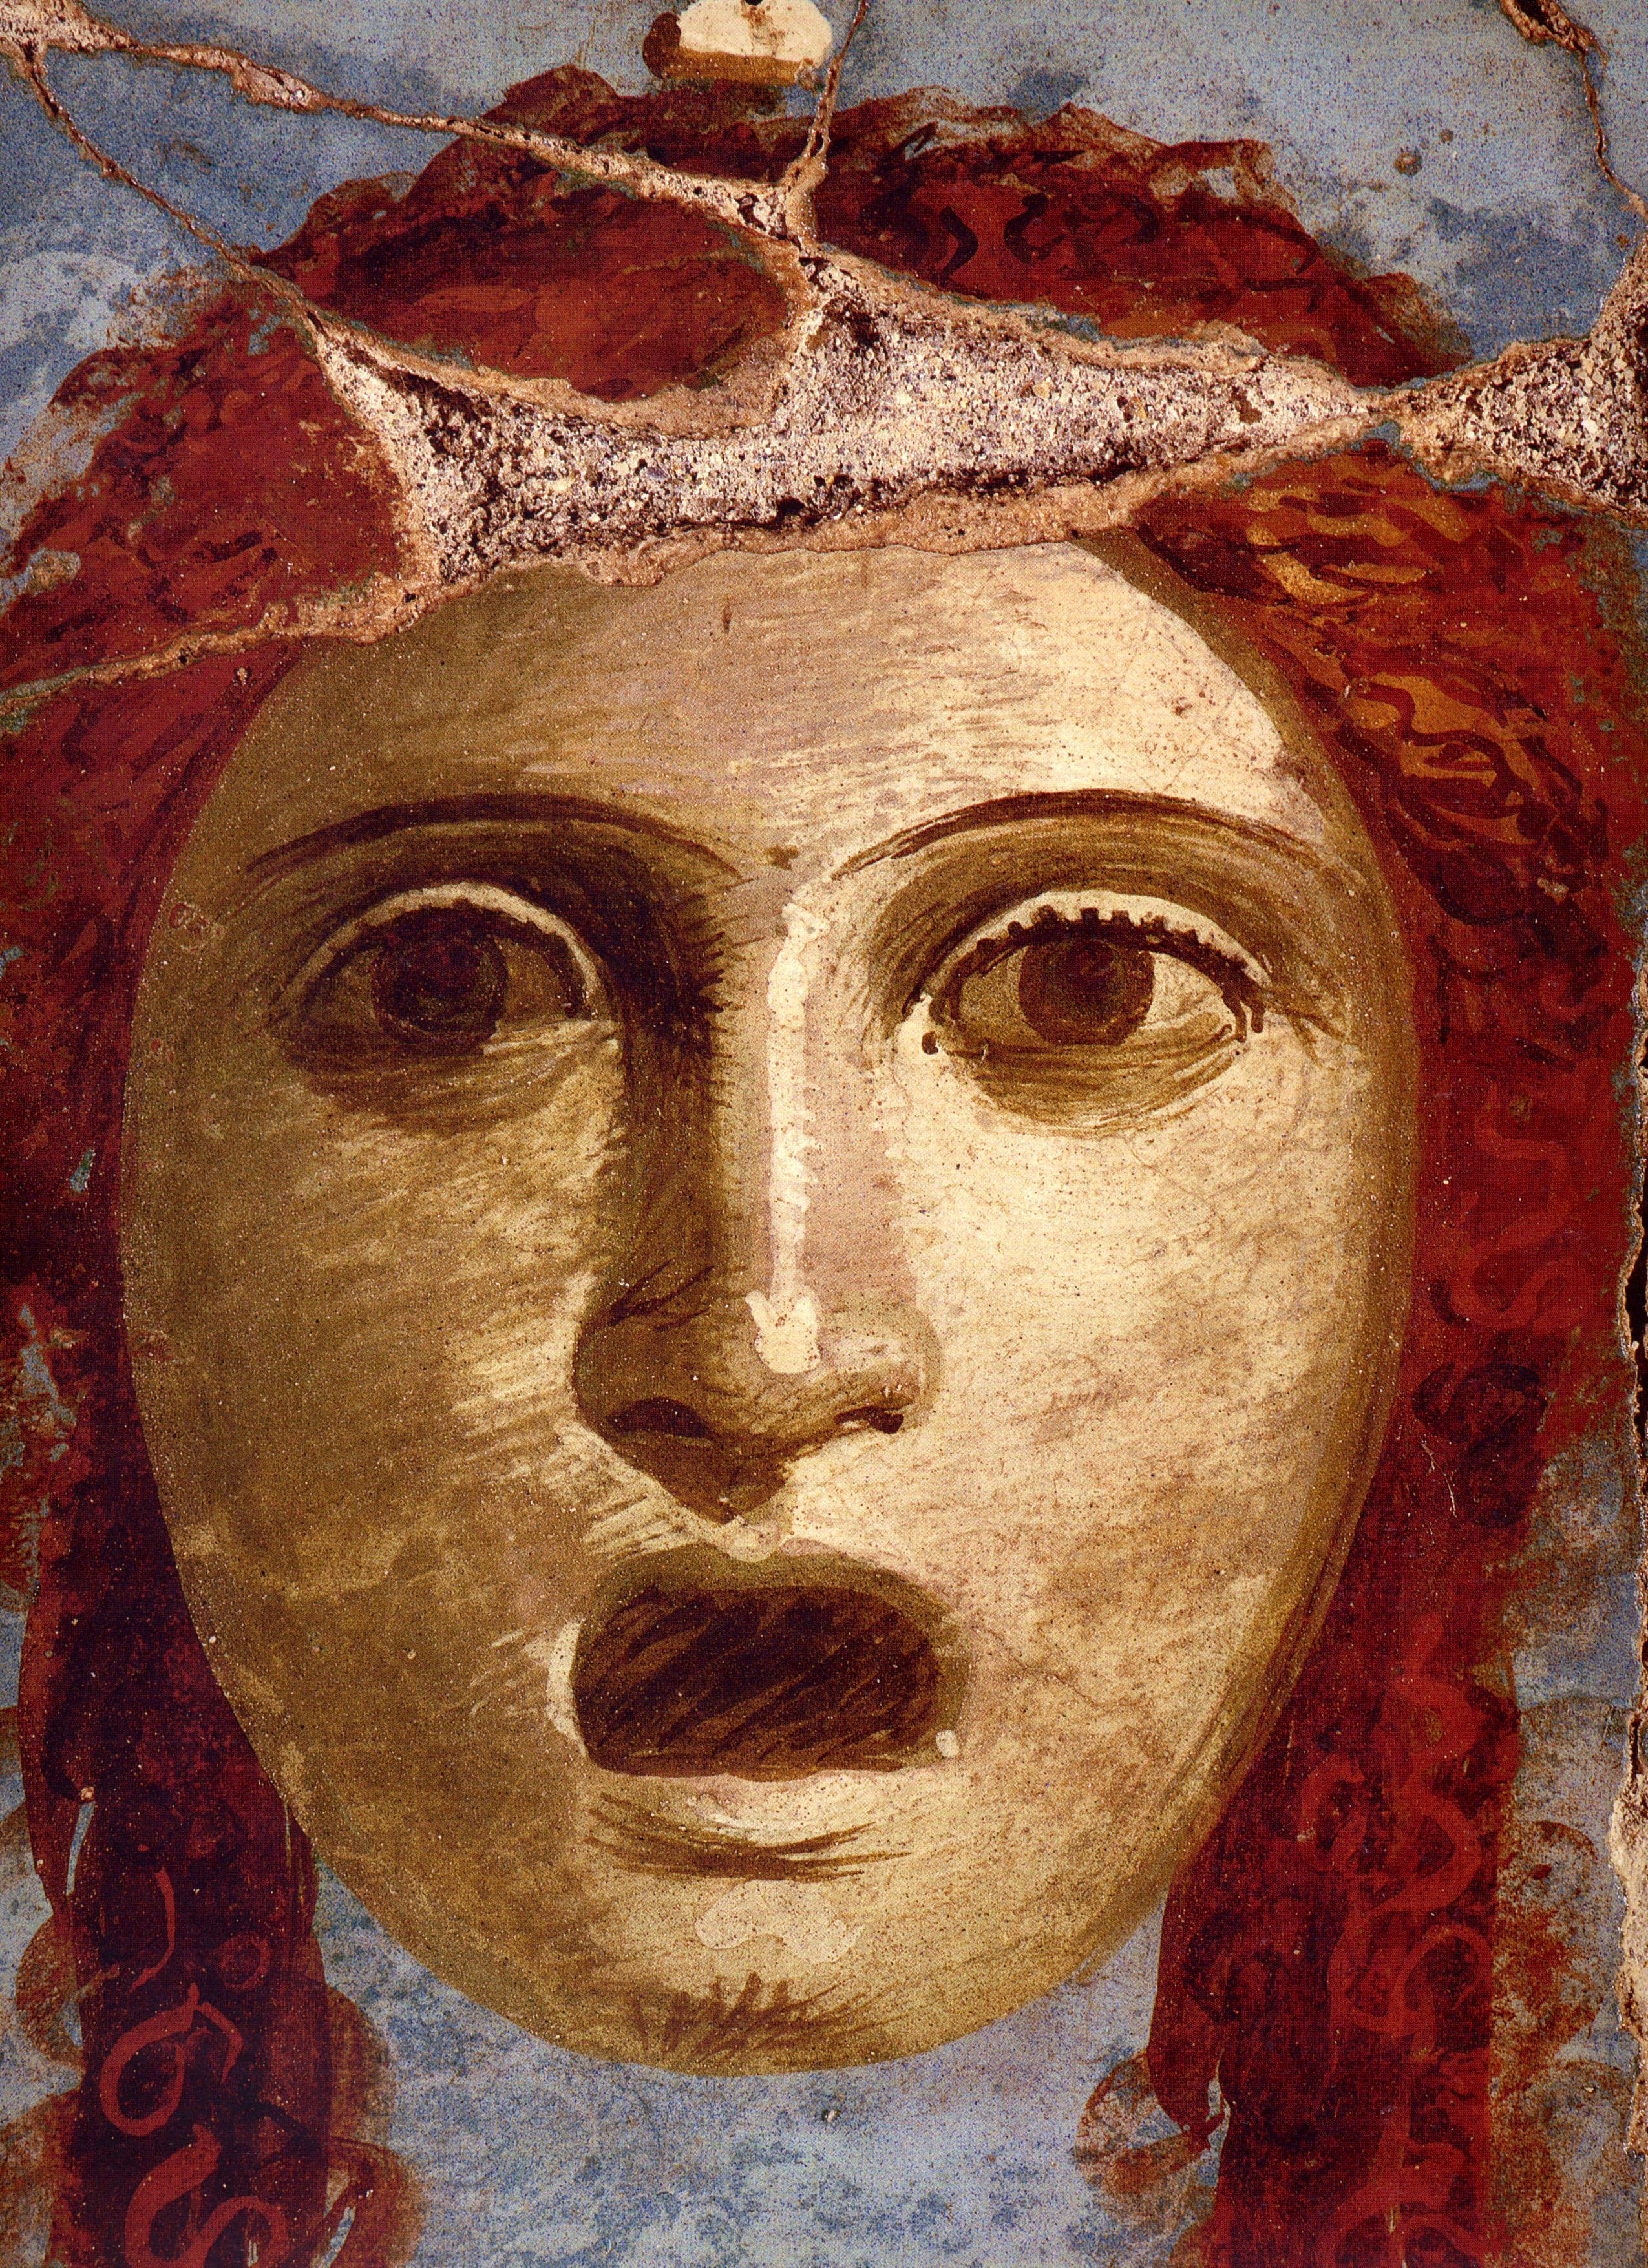 Fresco of a Theater Mask of a Woman from Pompeii